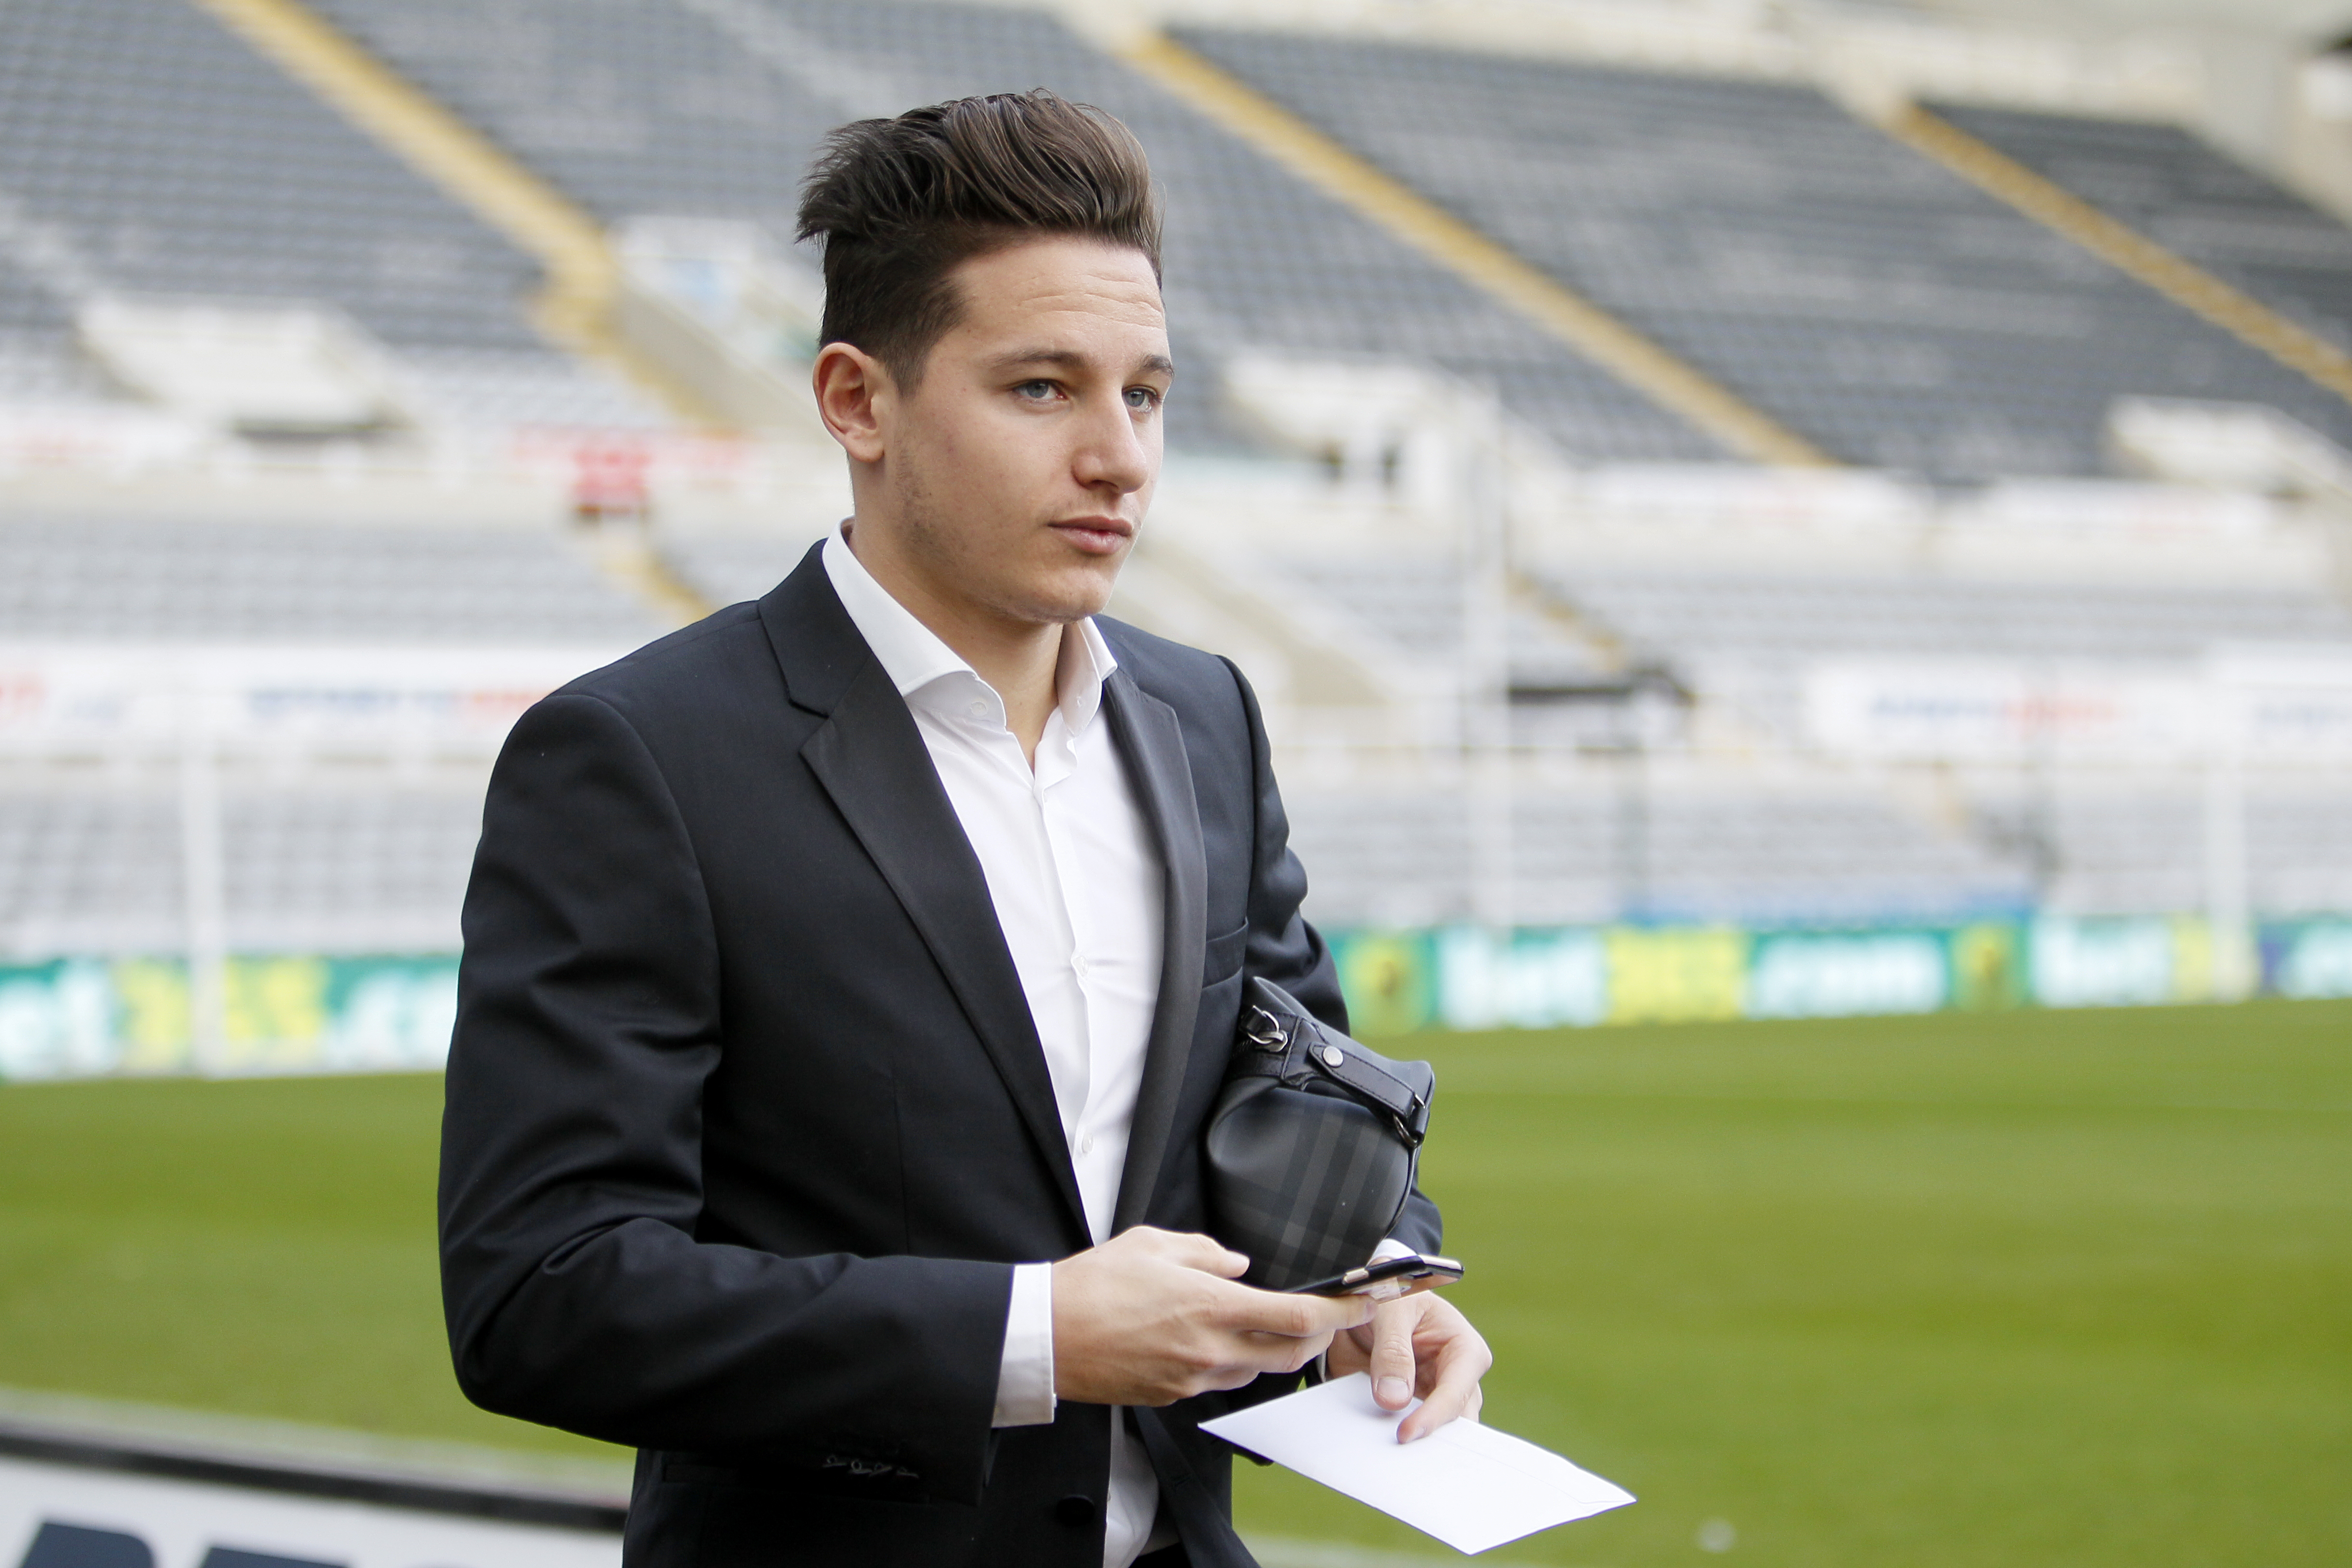 Florian Thauvin did not make an impression for his football at Newcastle